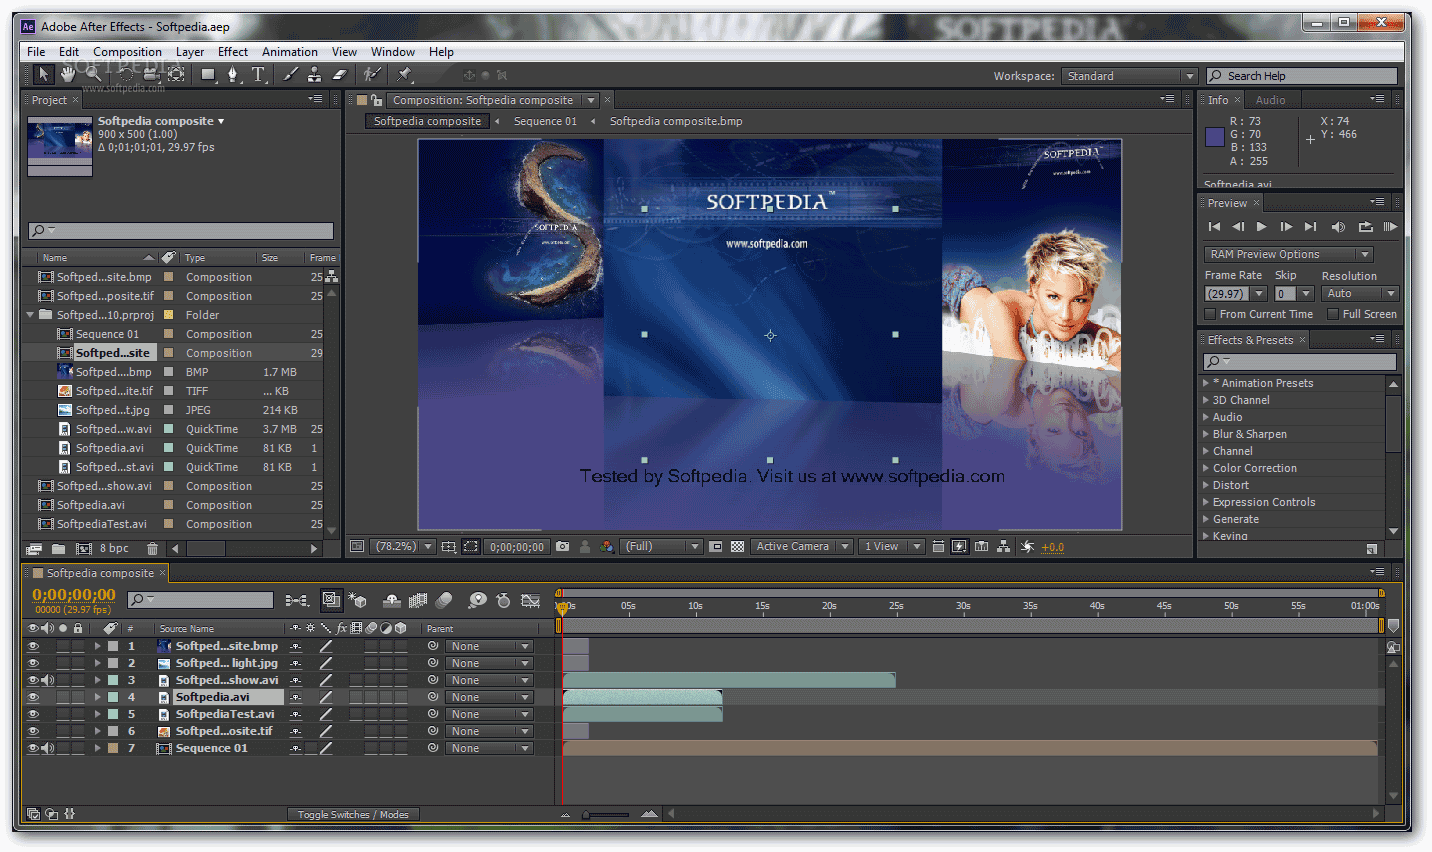 Adobe after effects download - 7a1